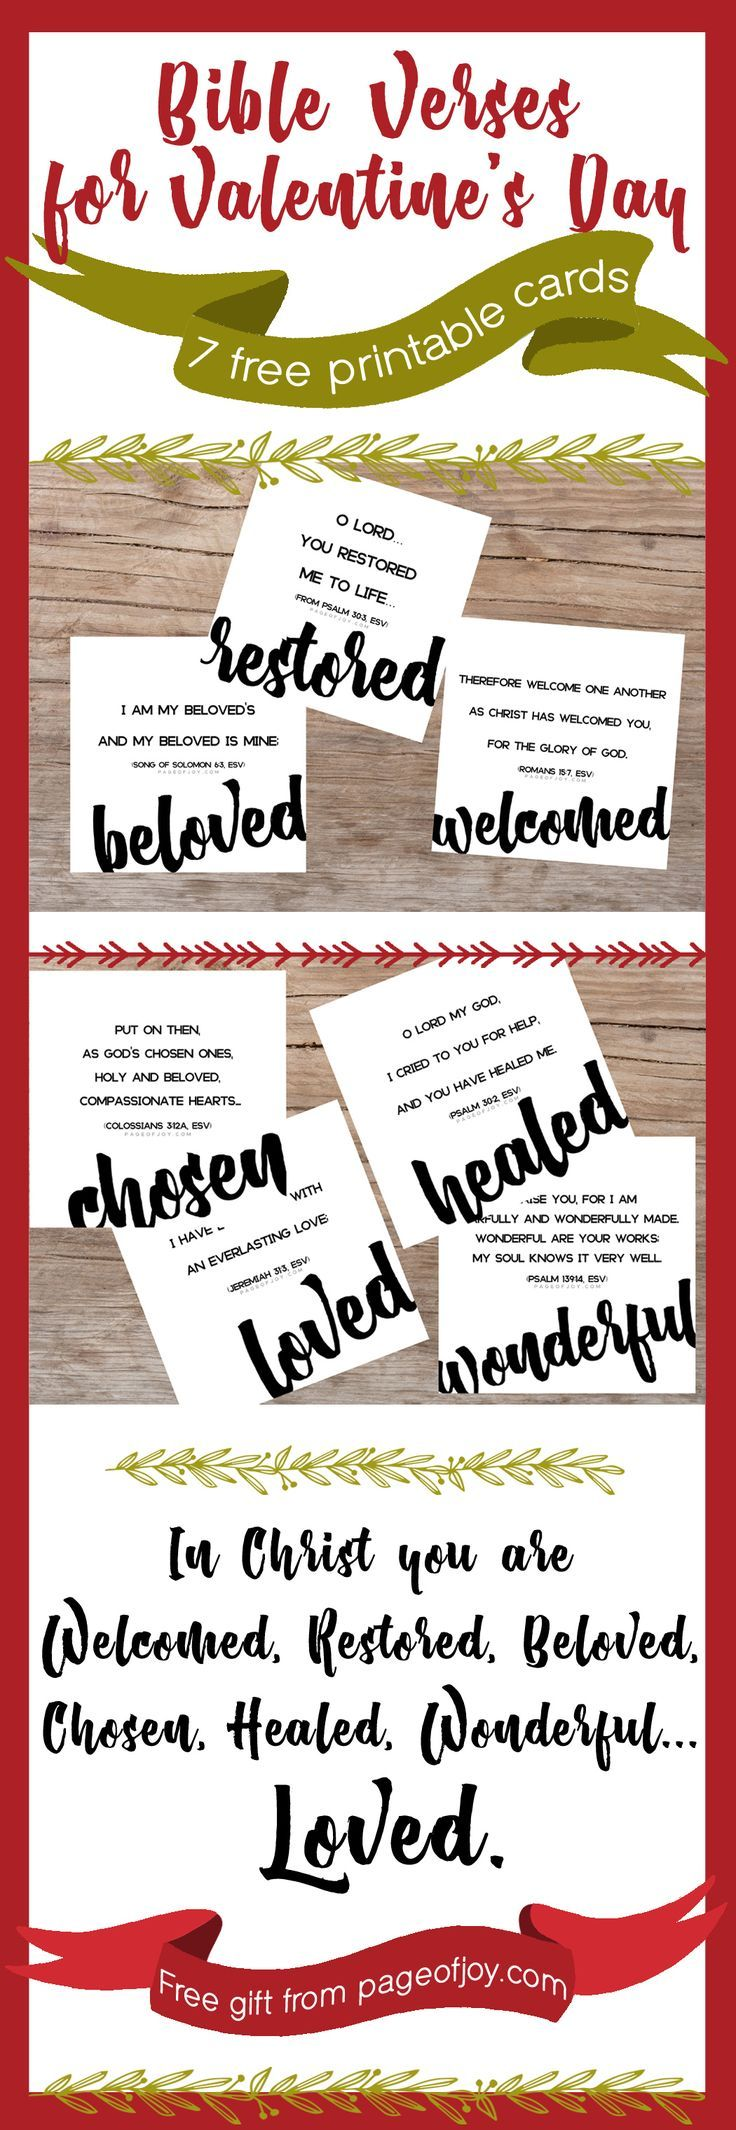 FREE printable Valentine's Day cards from page of Joy! Perfect cards for kids, friends, him... These cards remind you of who you are in Christ! Single, widowed, divorced or married- be encouraged this valentines day. God loves YOU! Grab these free cards and be encouraged. Share them with teachers and classrooms too! Great for teens and pre-teens too. Happy valentines day! ♥️